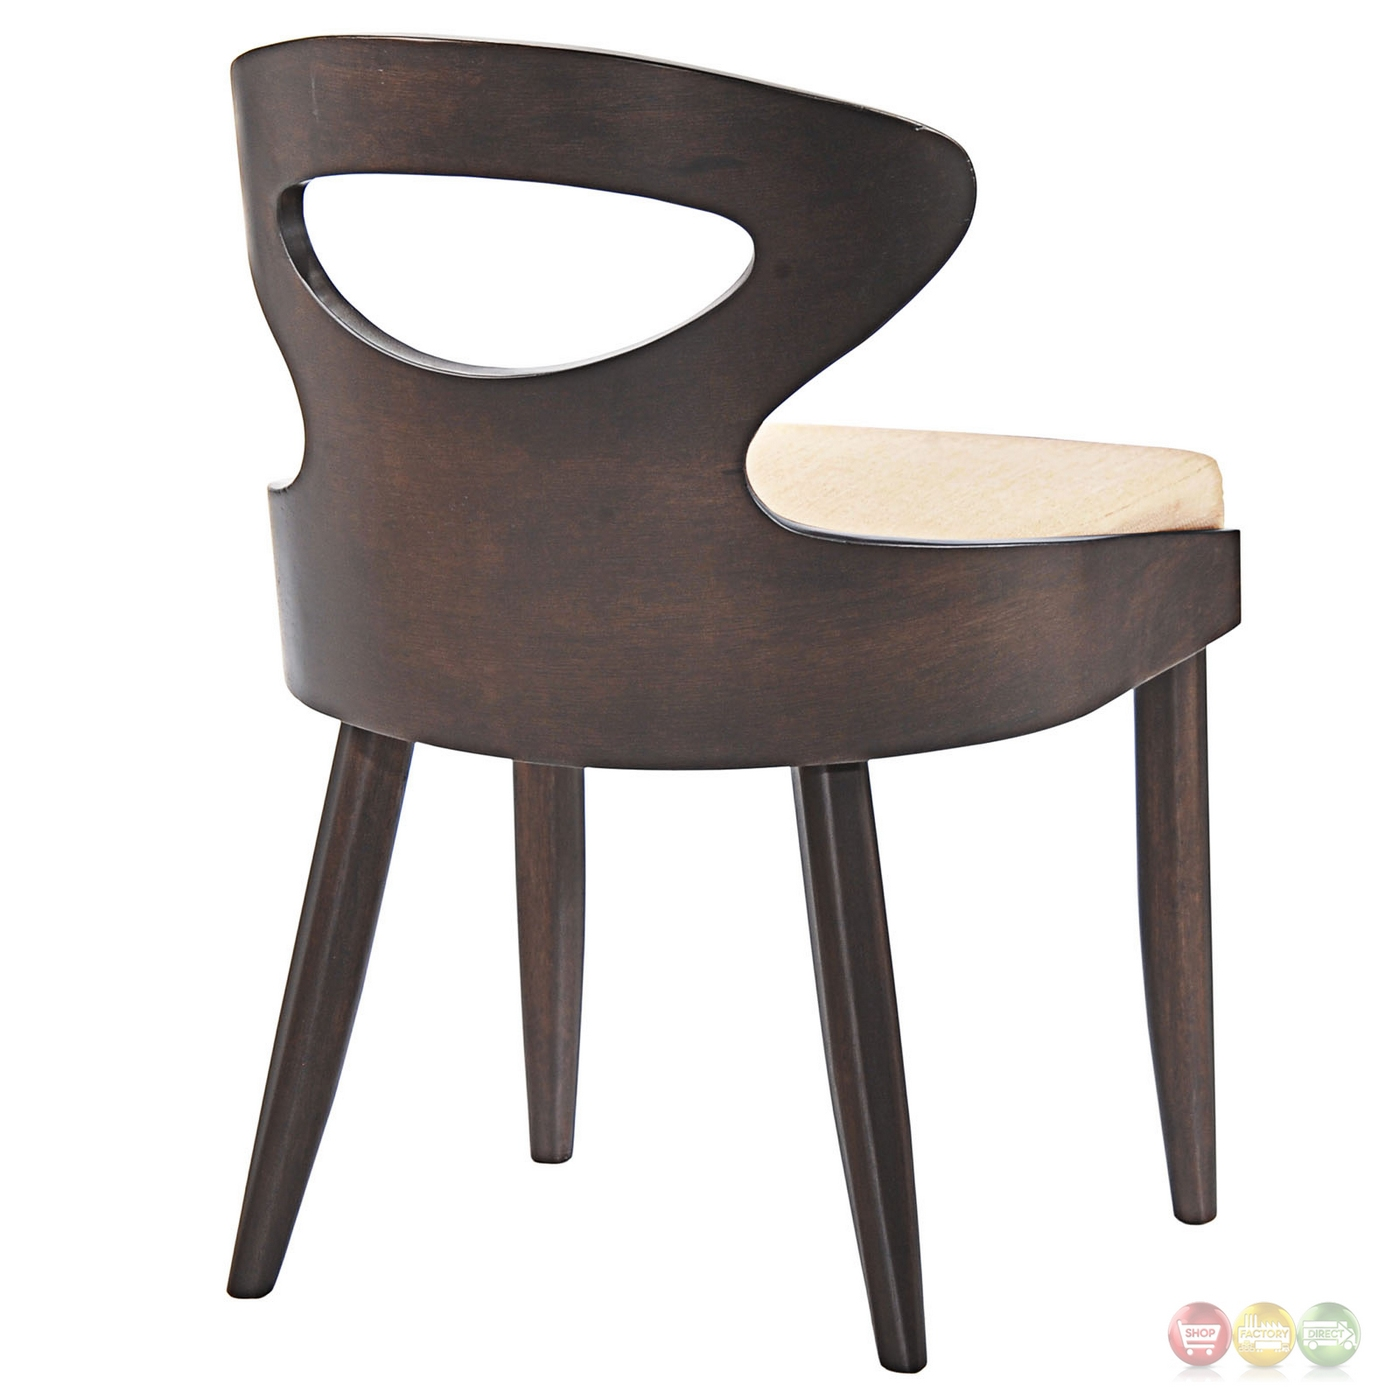 Transit vintage modern dining side chair with upholstered for Upholstered dining chairs contemporary